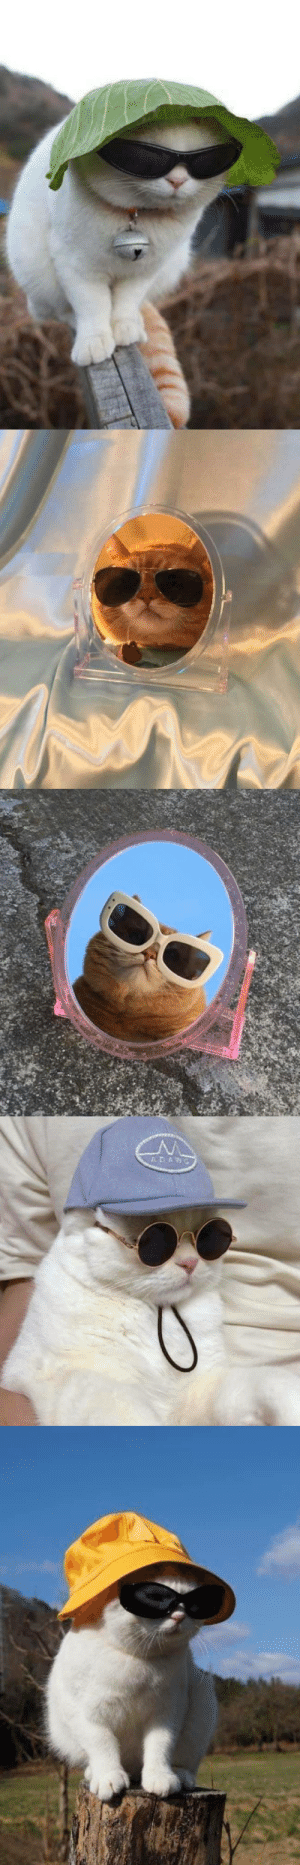 protect-and-love-cats:  Cats with more style than you: protect-and-love-cats:  Cats with more style than you